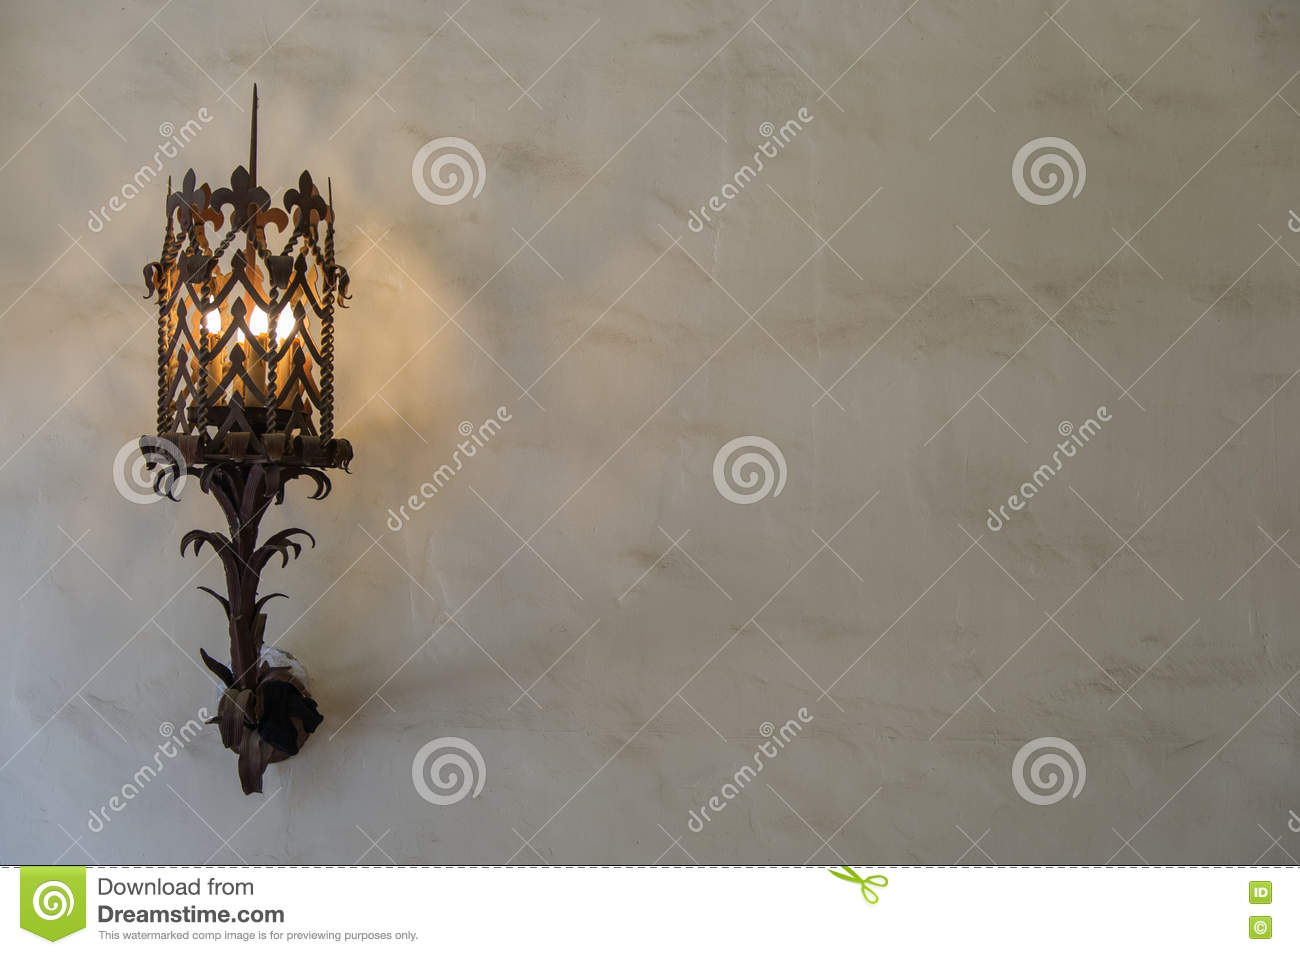 Wall Sconce On Plaster Wall Landscape Stock Image Image Of